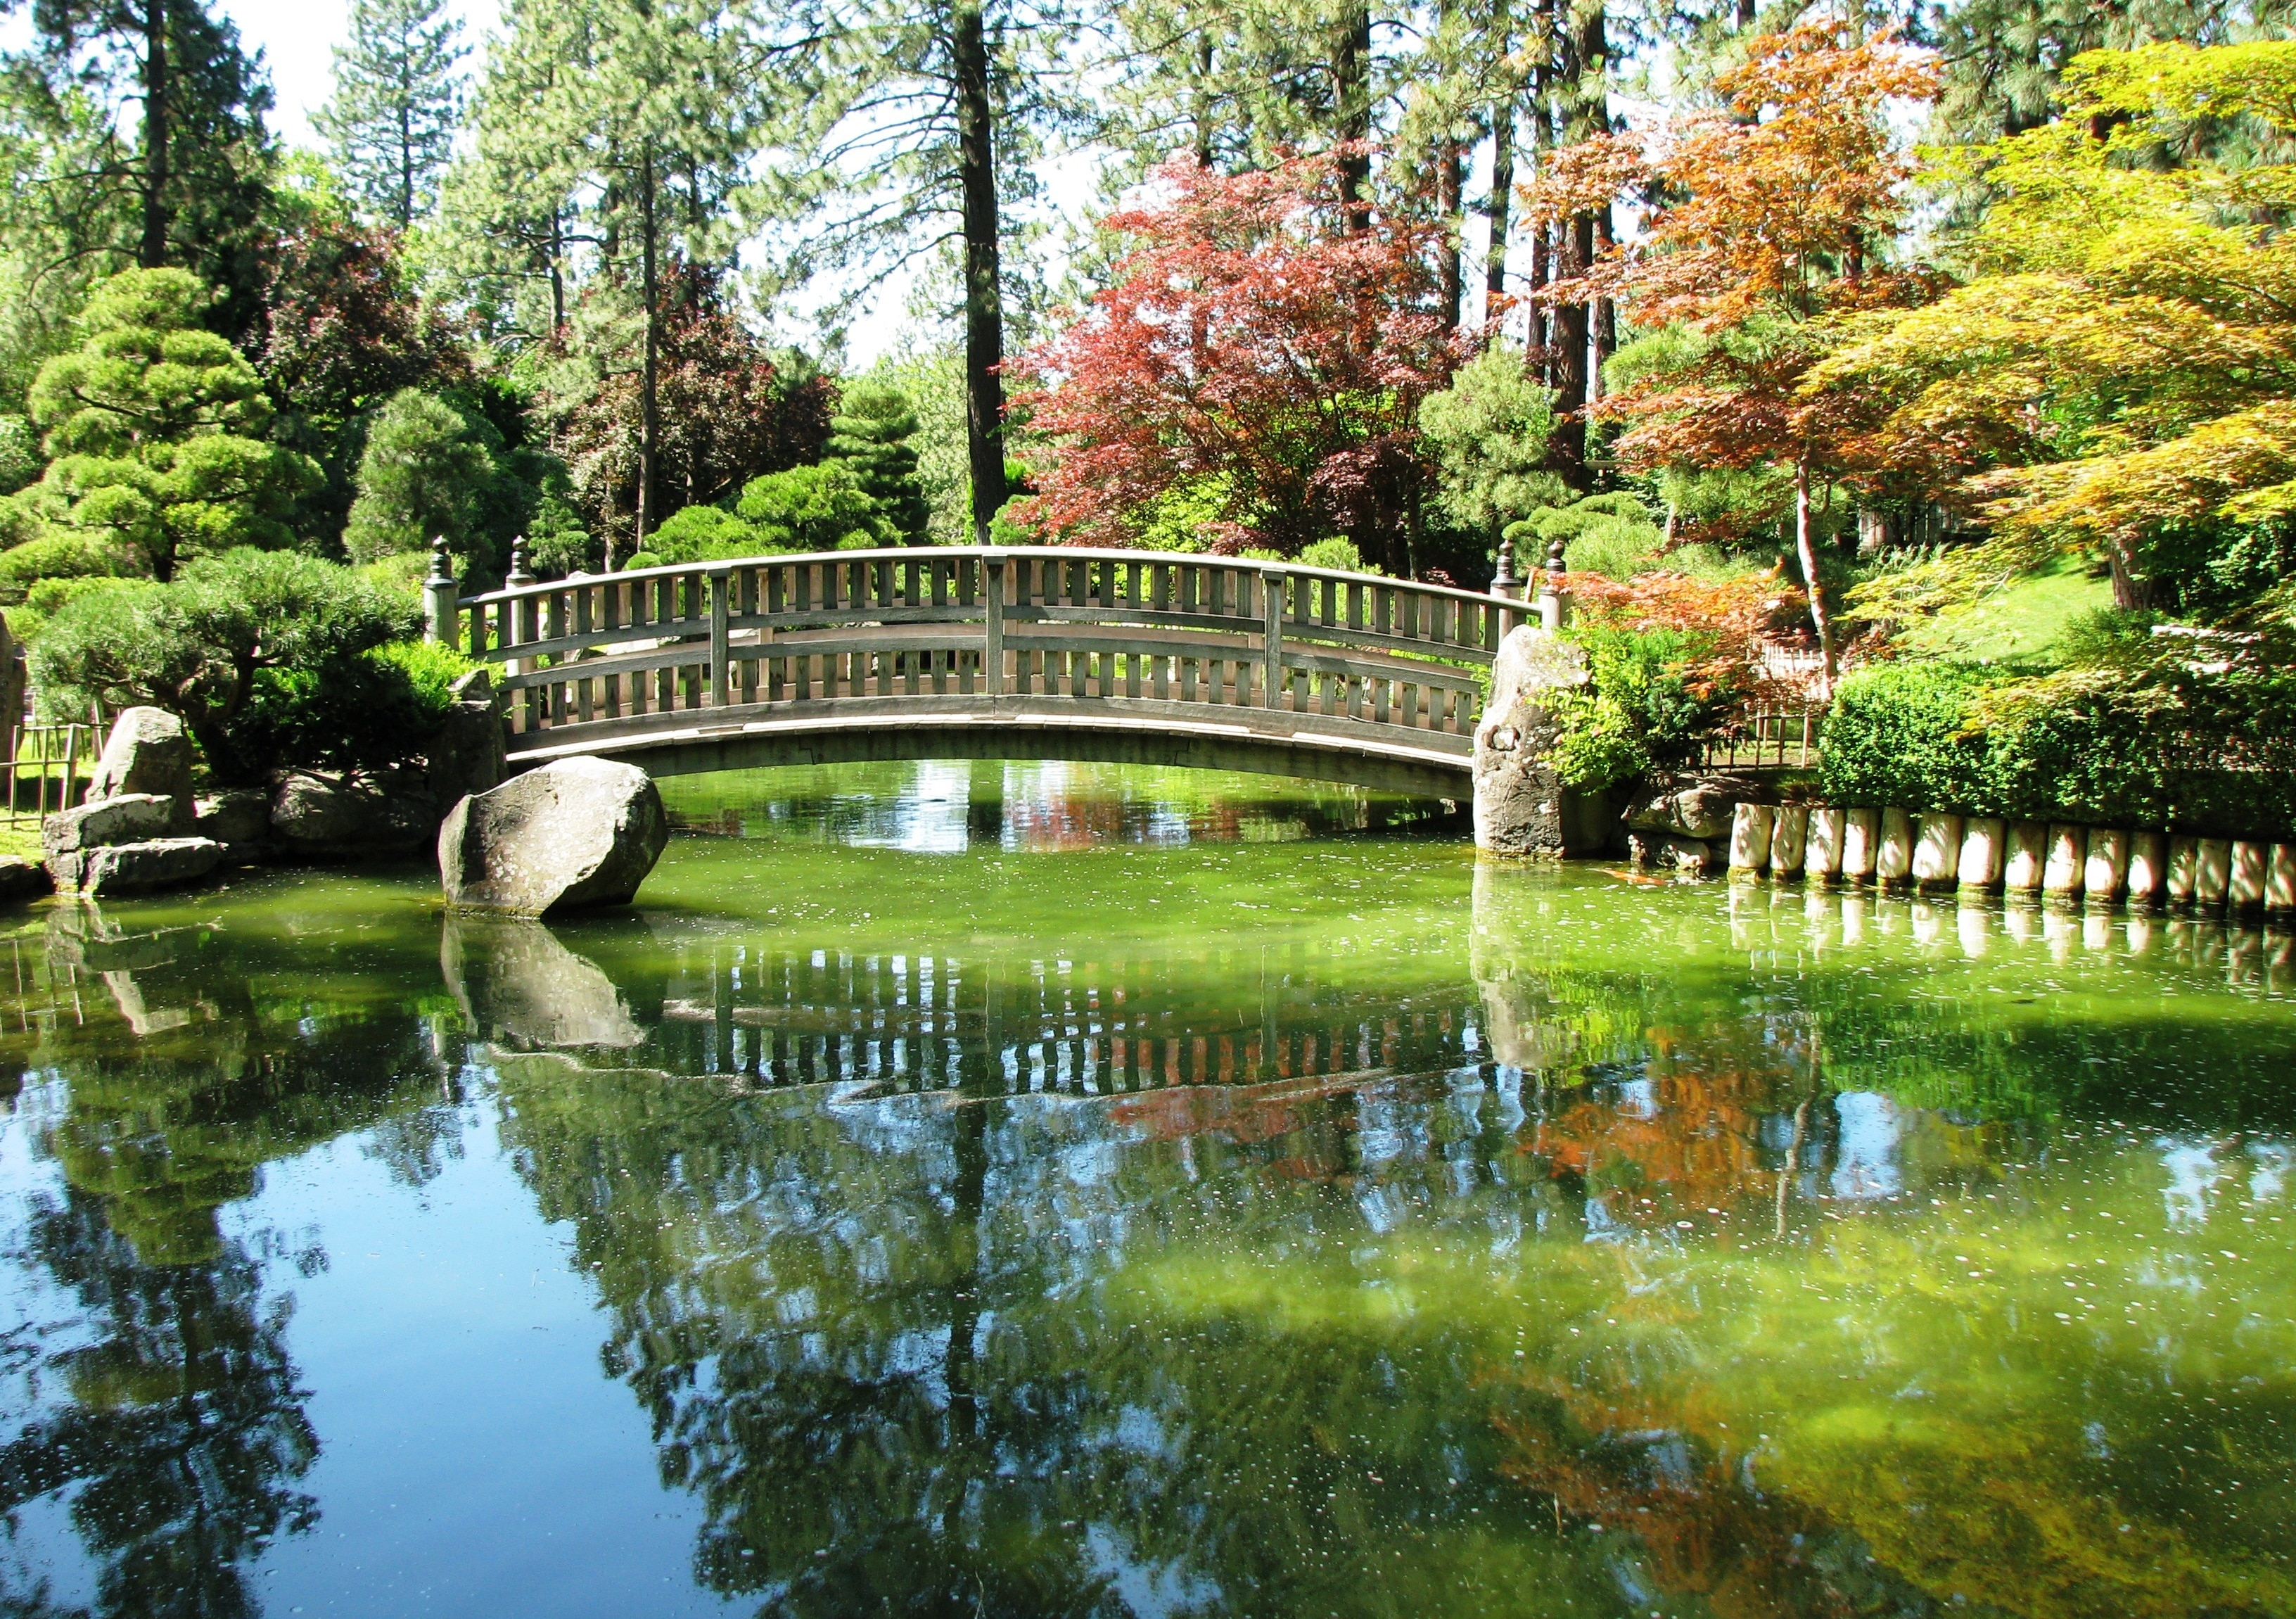 Bridge, pond and colorful trees (Shutterstock)